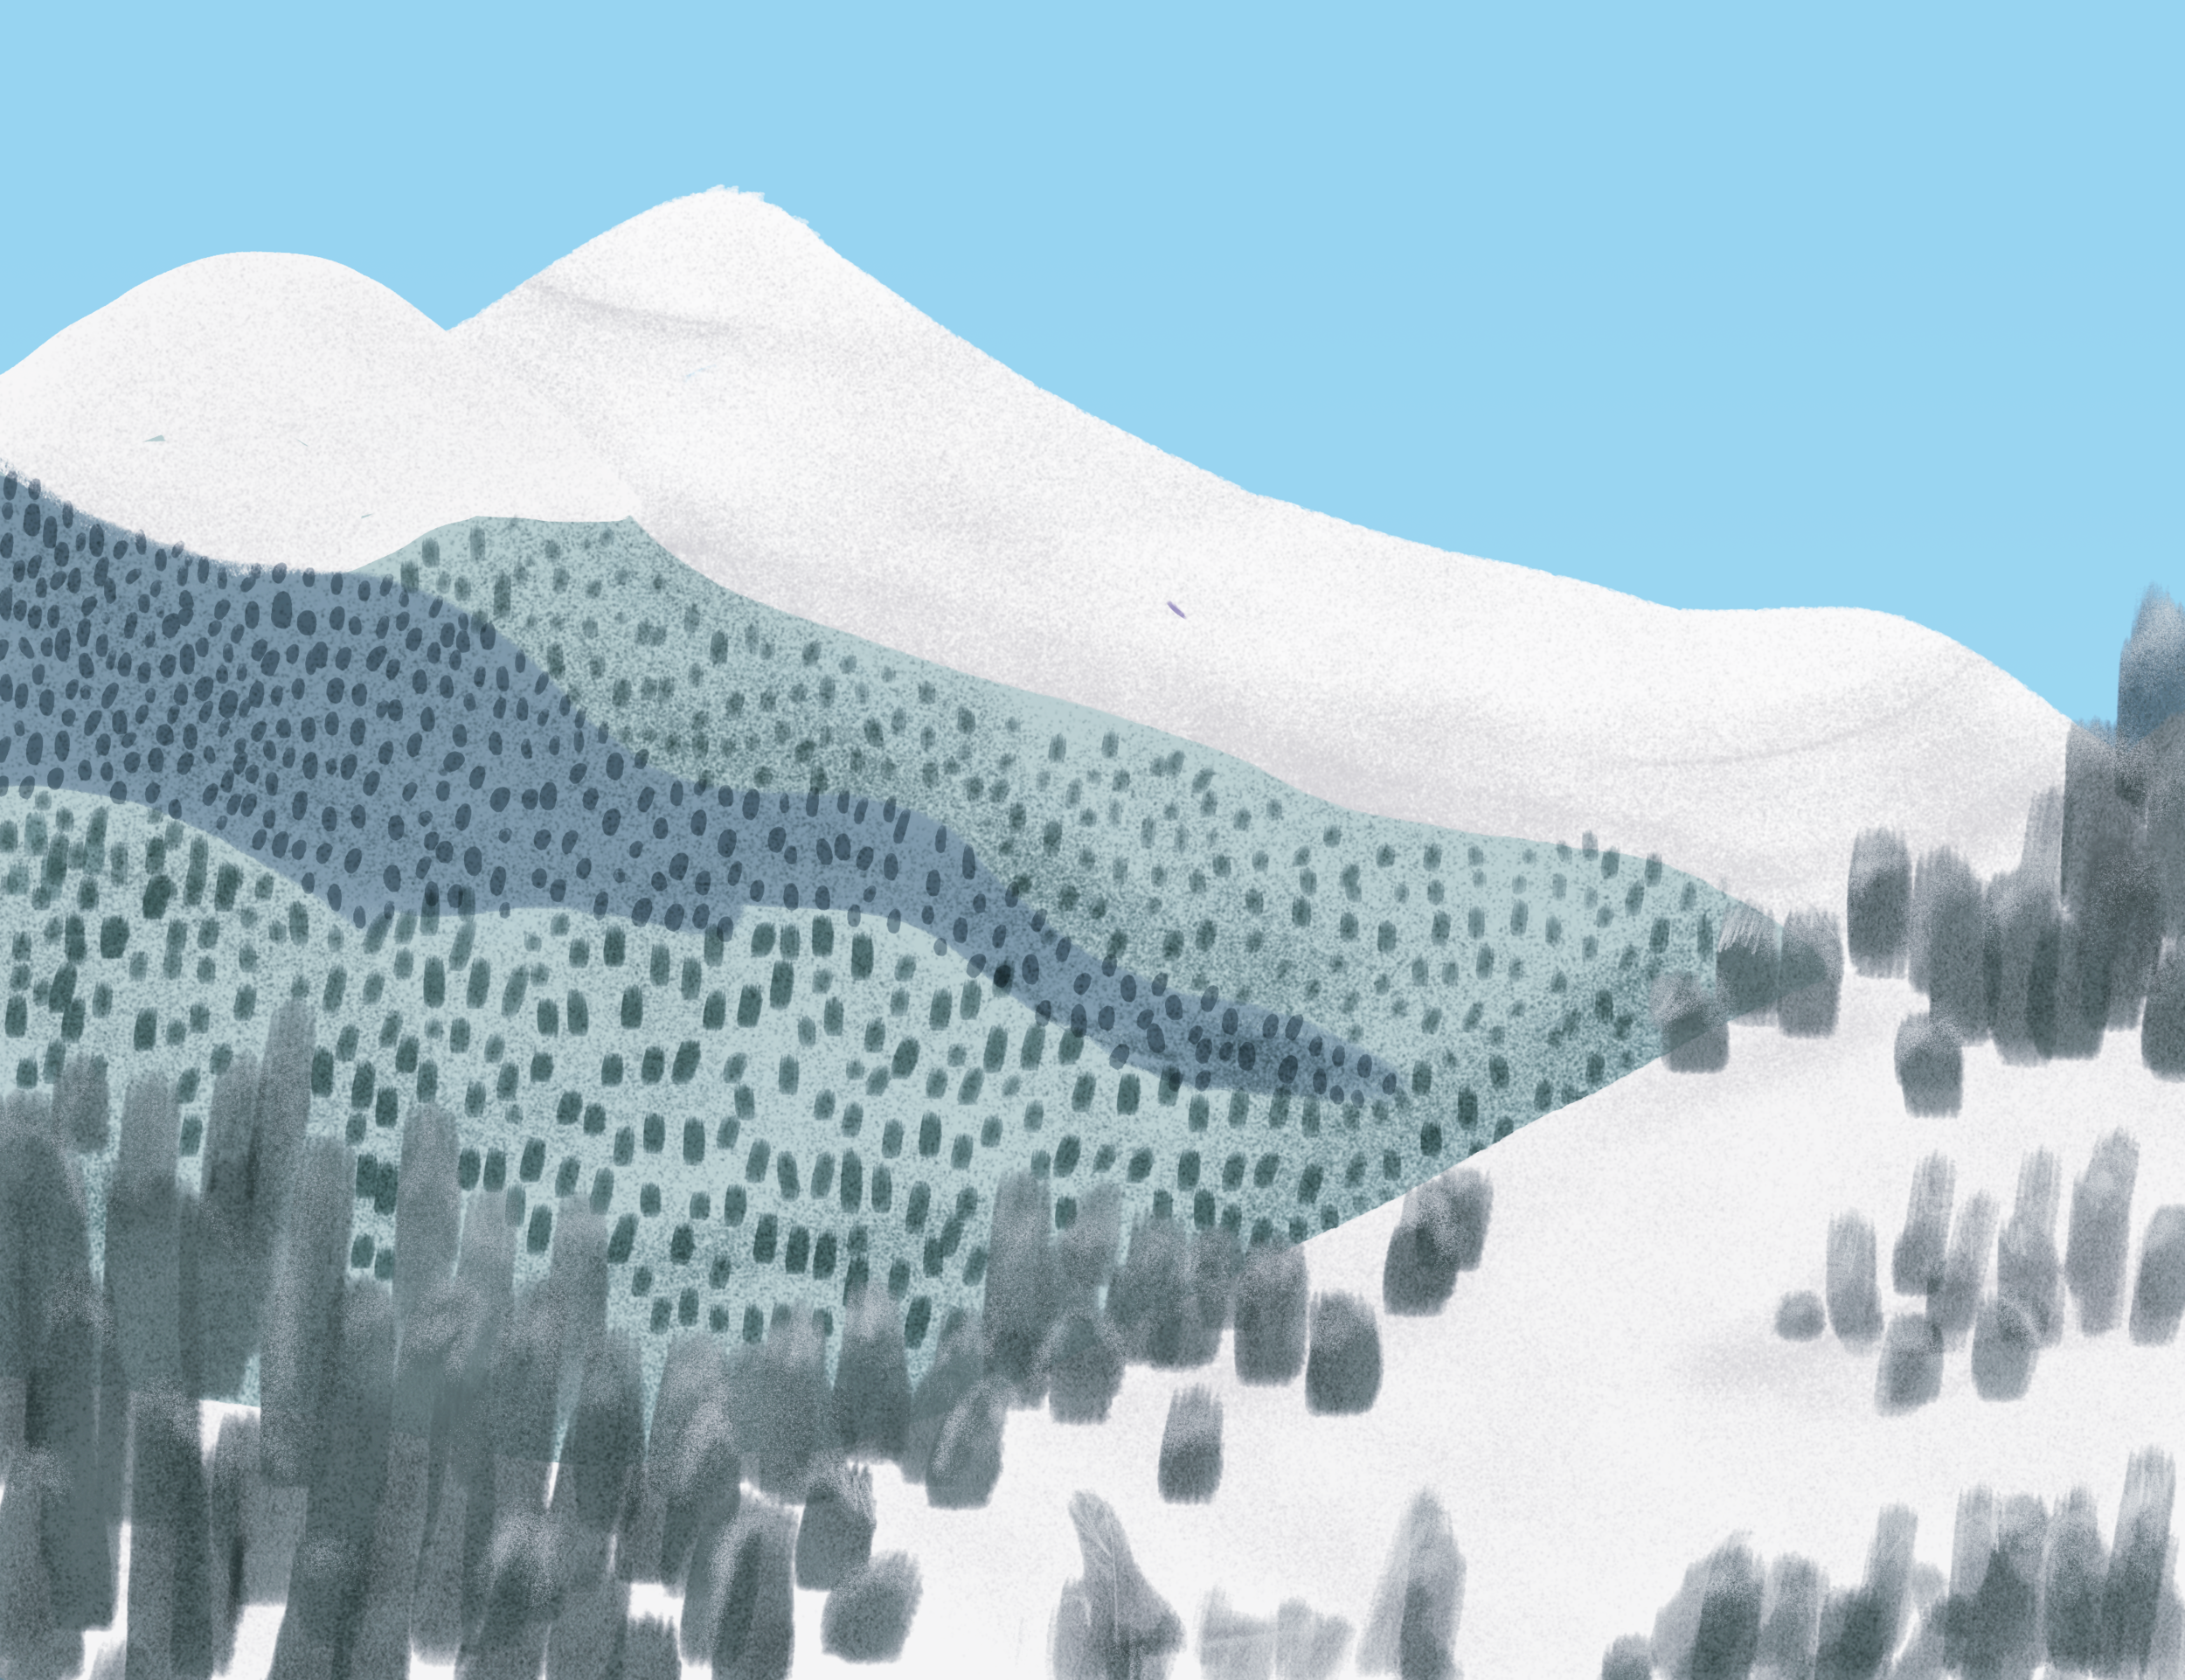 74-a mountain.png